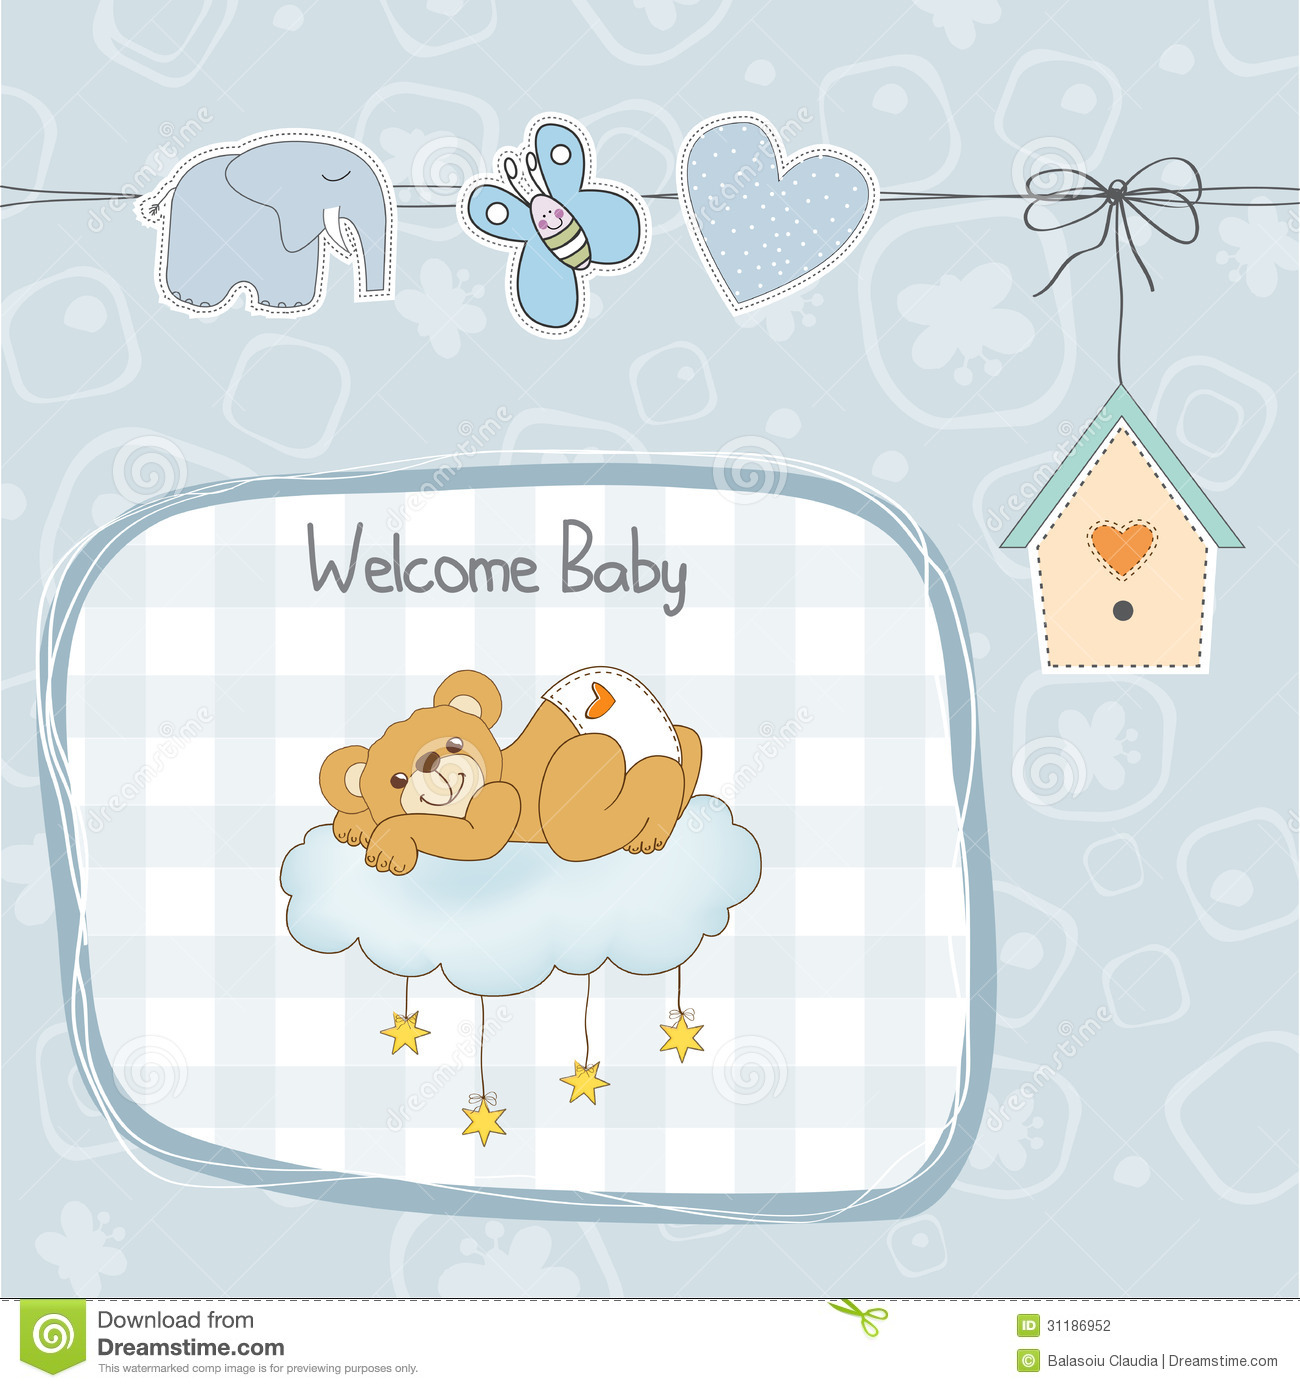 Baby Shower Card With Sleepy Teddy Bear Stock Vector - Illustration of concept, hanging: 31186952